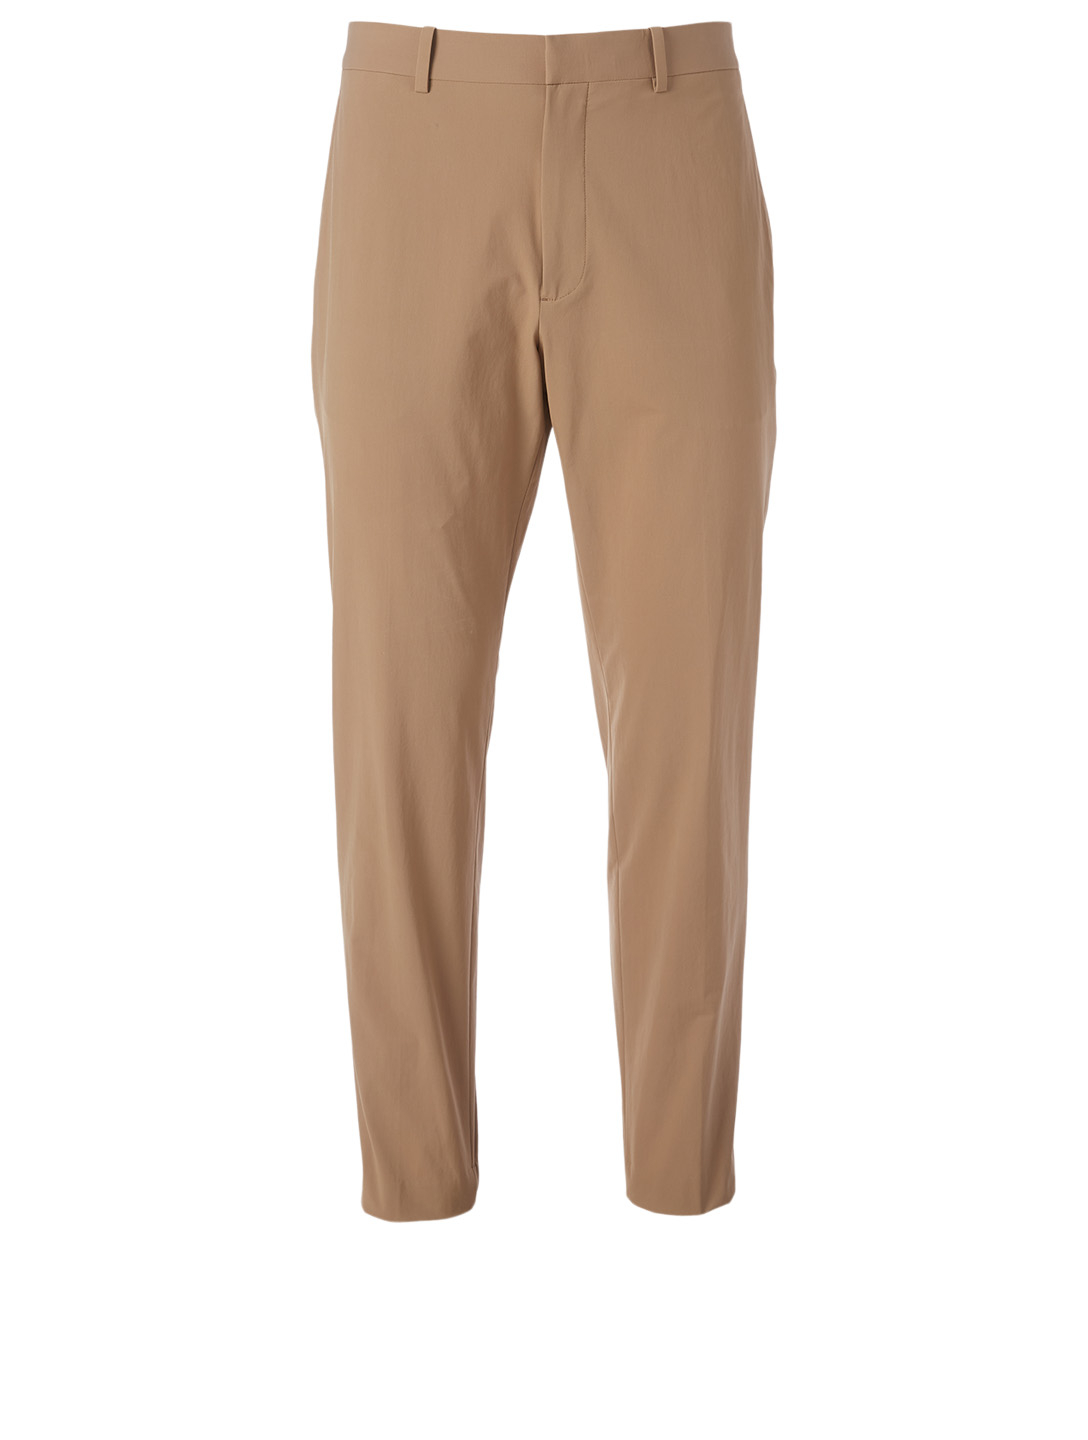 THEORY Precision Tech Curtis Pants Men's Beige